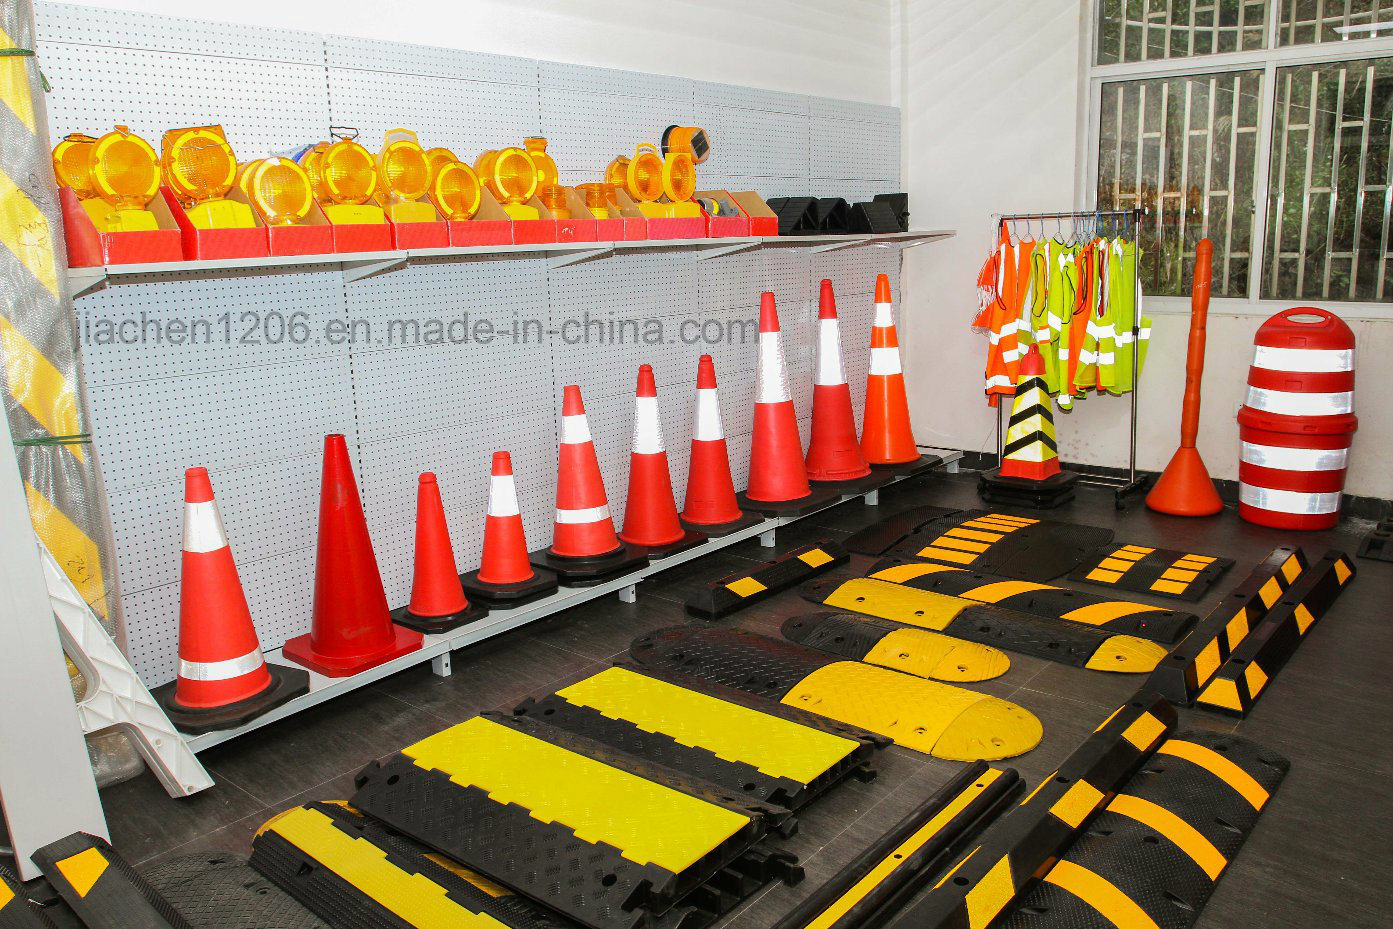 Jiachen Factory Direct Wholesale Plastic Traffic Barrier with High Quality